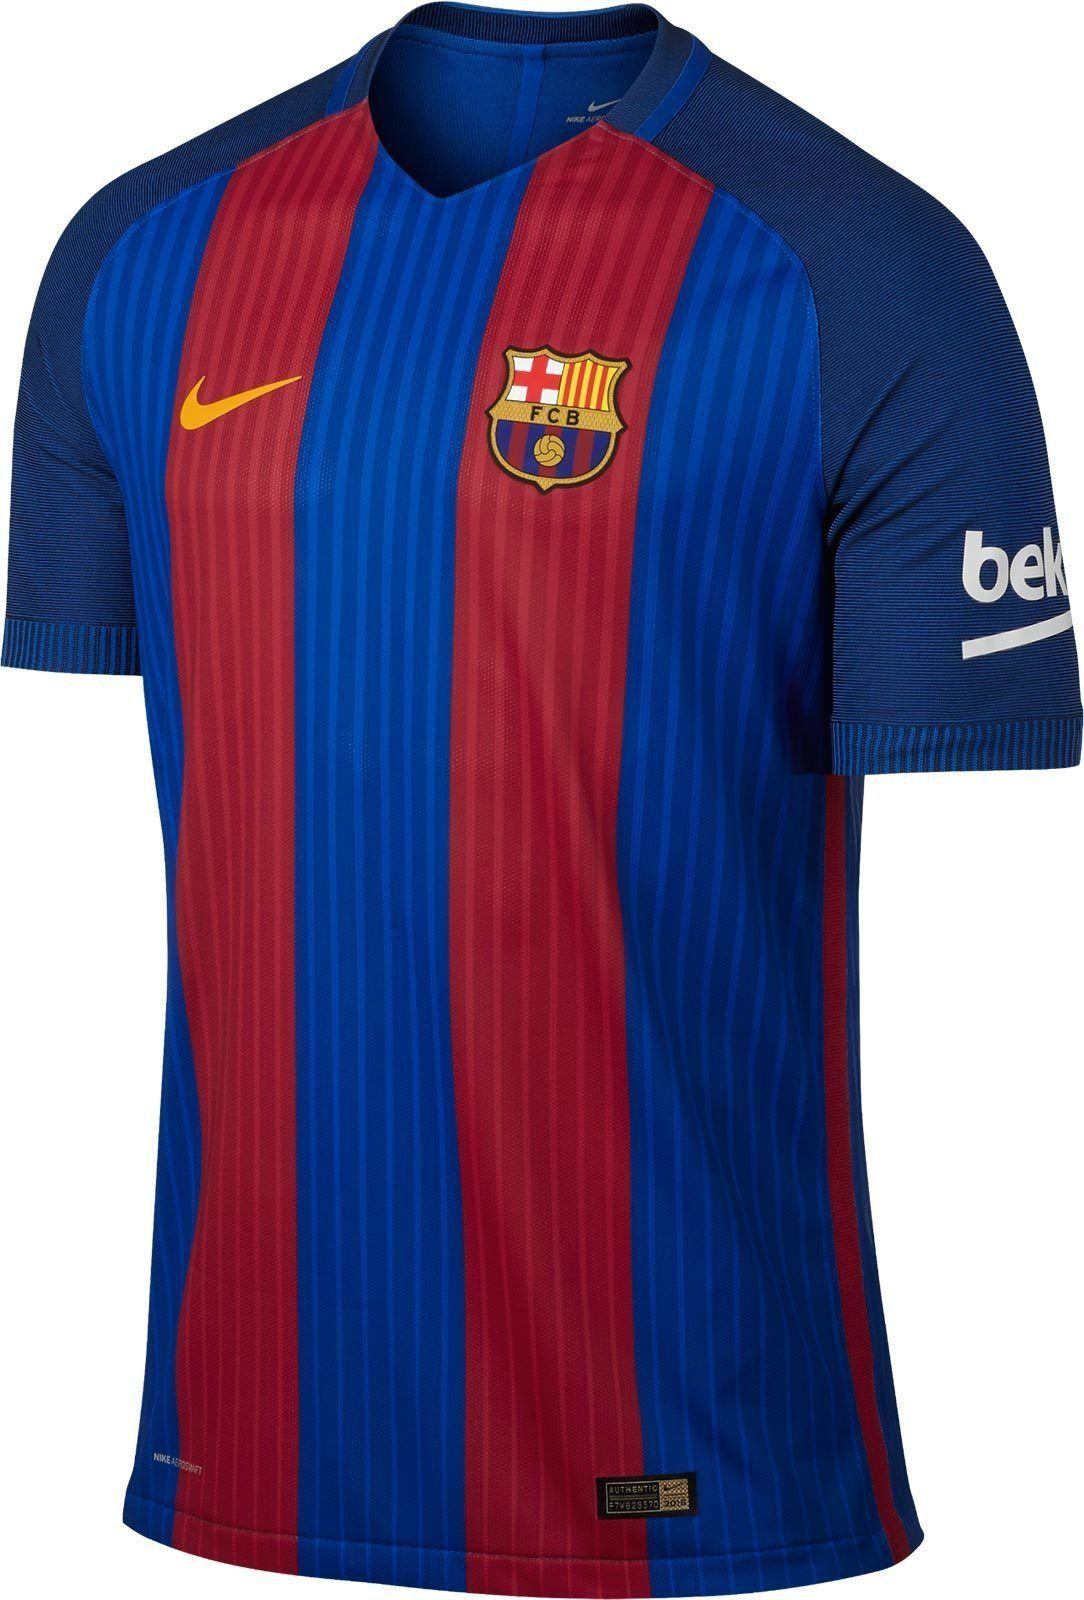 0cc1720425a0 NIKE FC BARCELONA AUTHENTIC VAPOR MATCH HOME JERSEY 2016 17 ENGINEERED  SPEED The 2016 17 FC Barcelona Vapor Match Home Men s Soccer Jersey is the  same ...